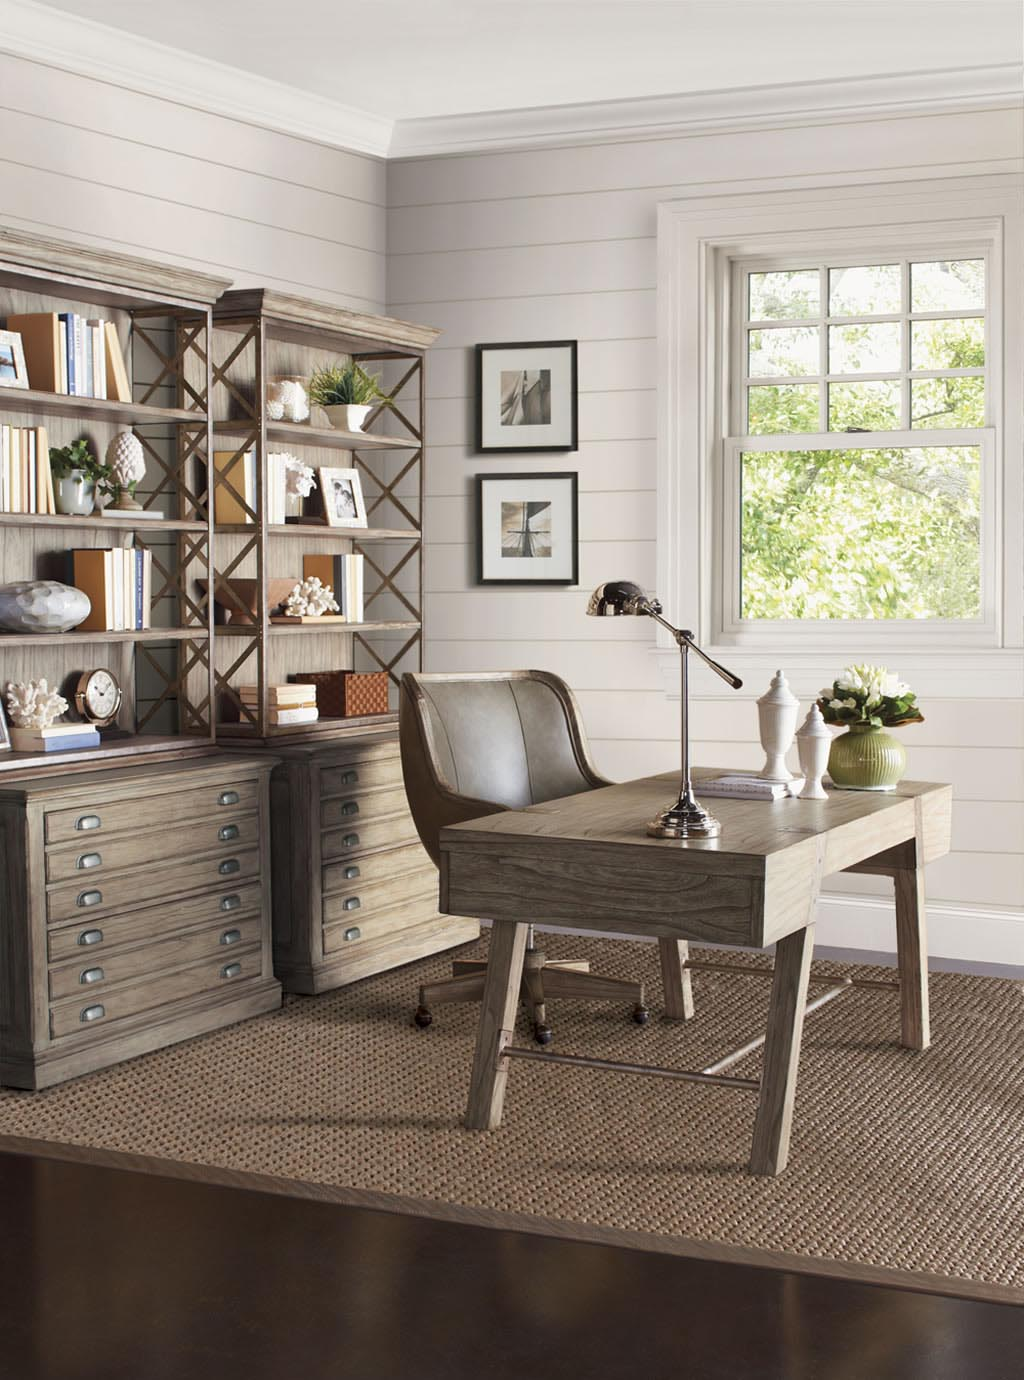 Luxury office furniture brands best decor things Home furniture brands list